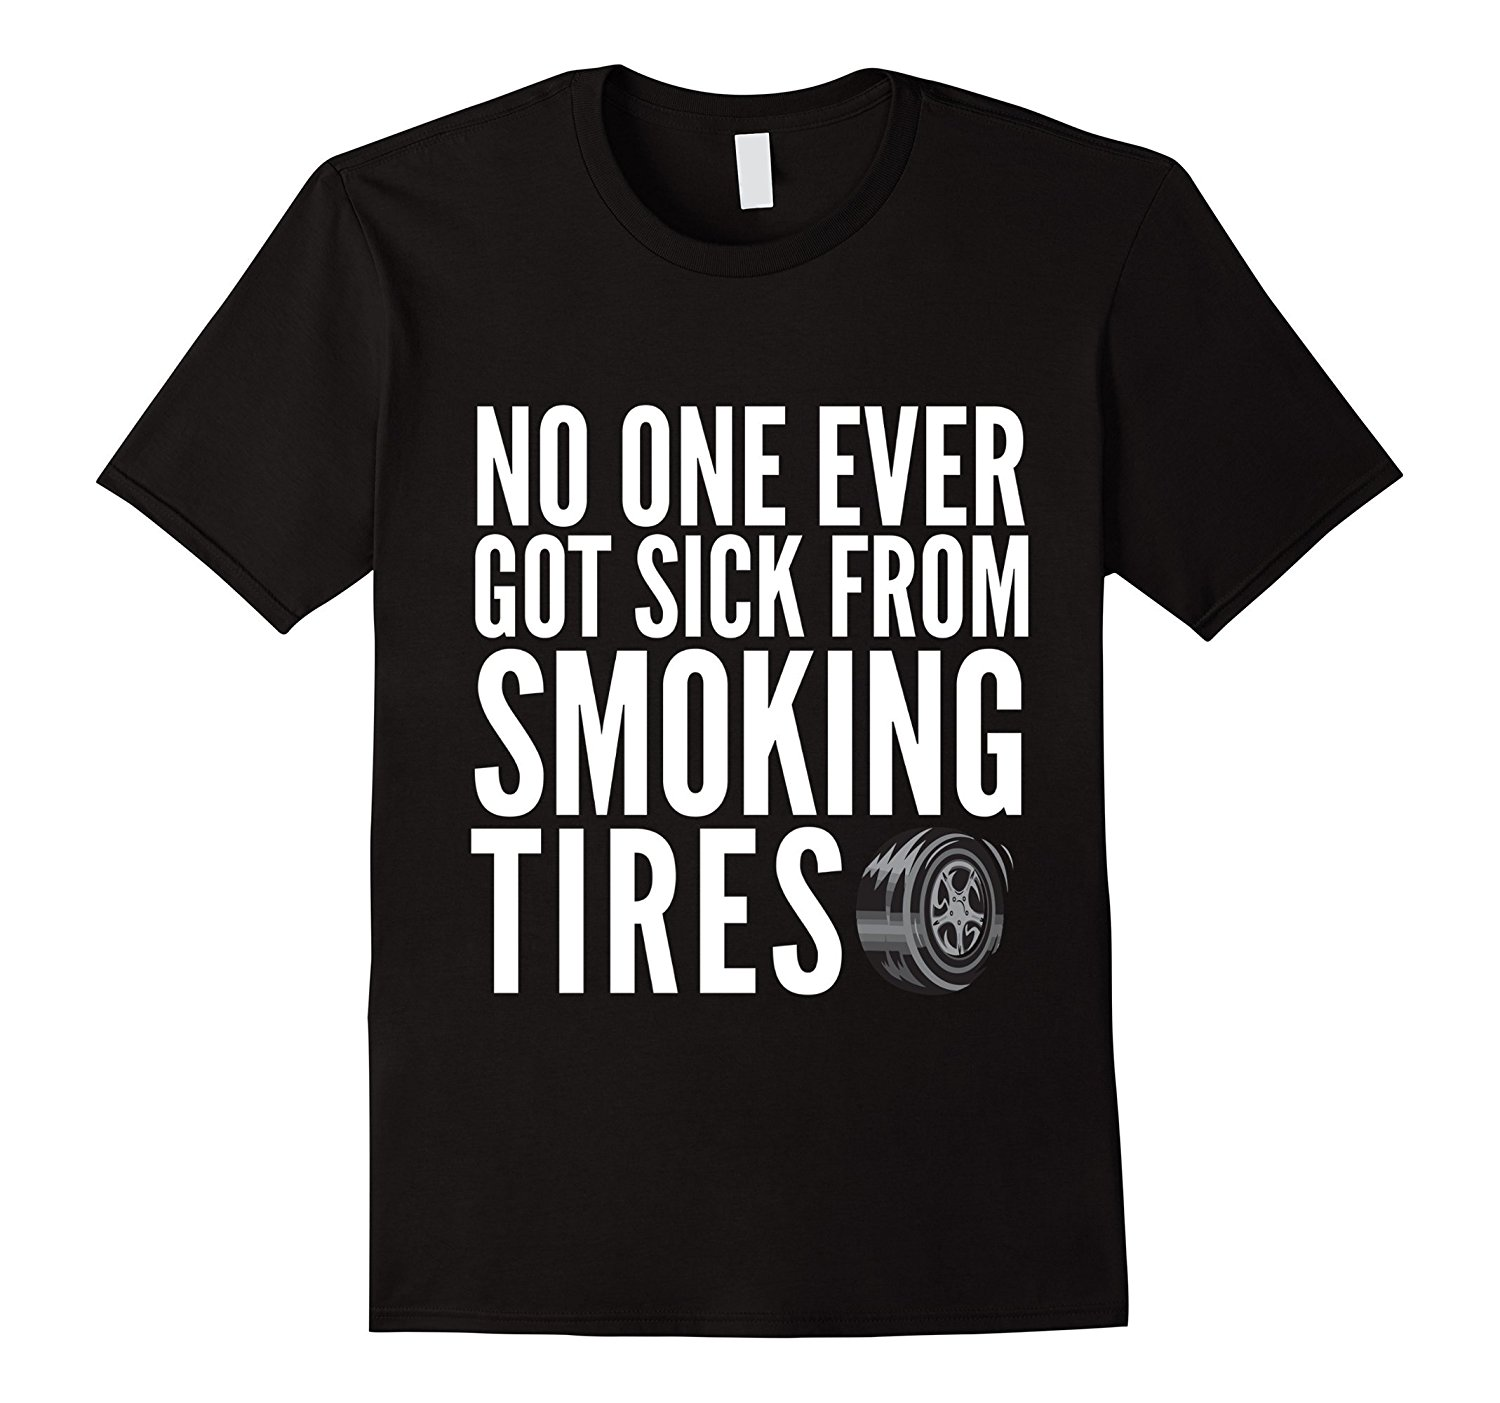 2018 New Summer Fashion Cool Tee Shirt No One Ever Got Sick From Smok Tires Cars Racings T-Shirt Casual T-shirt